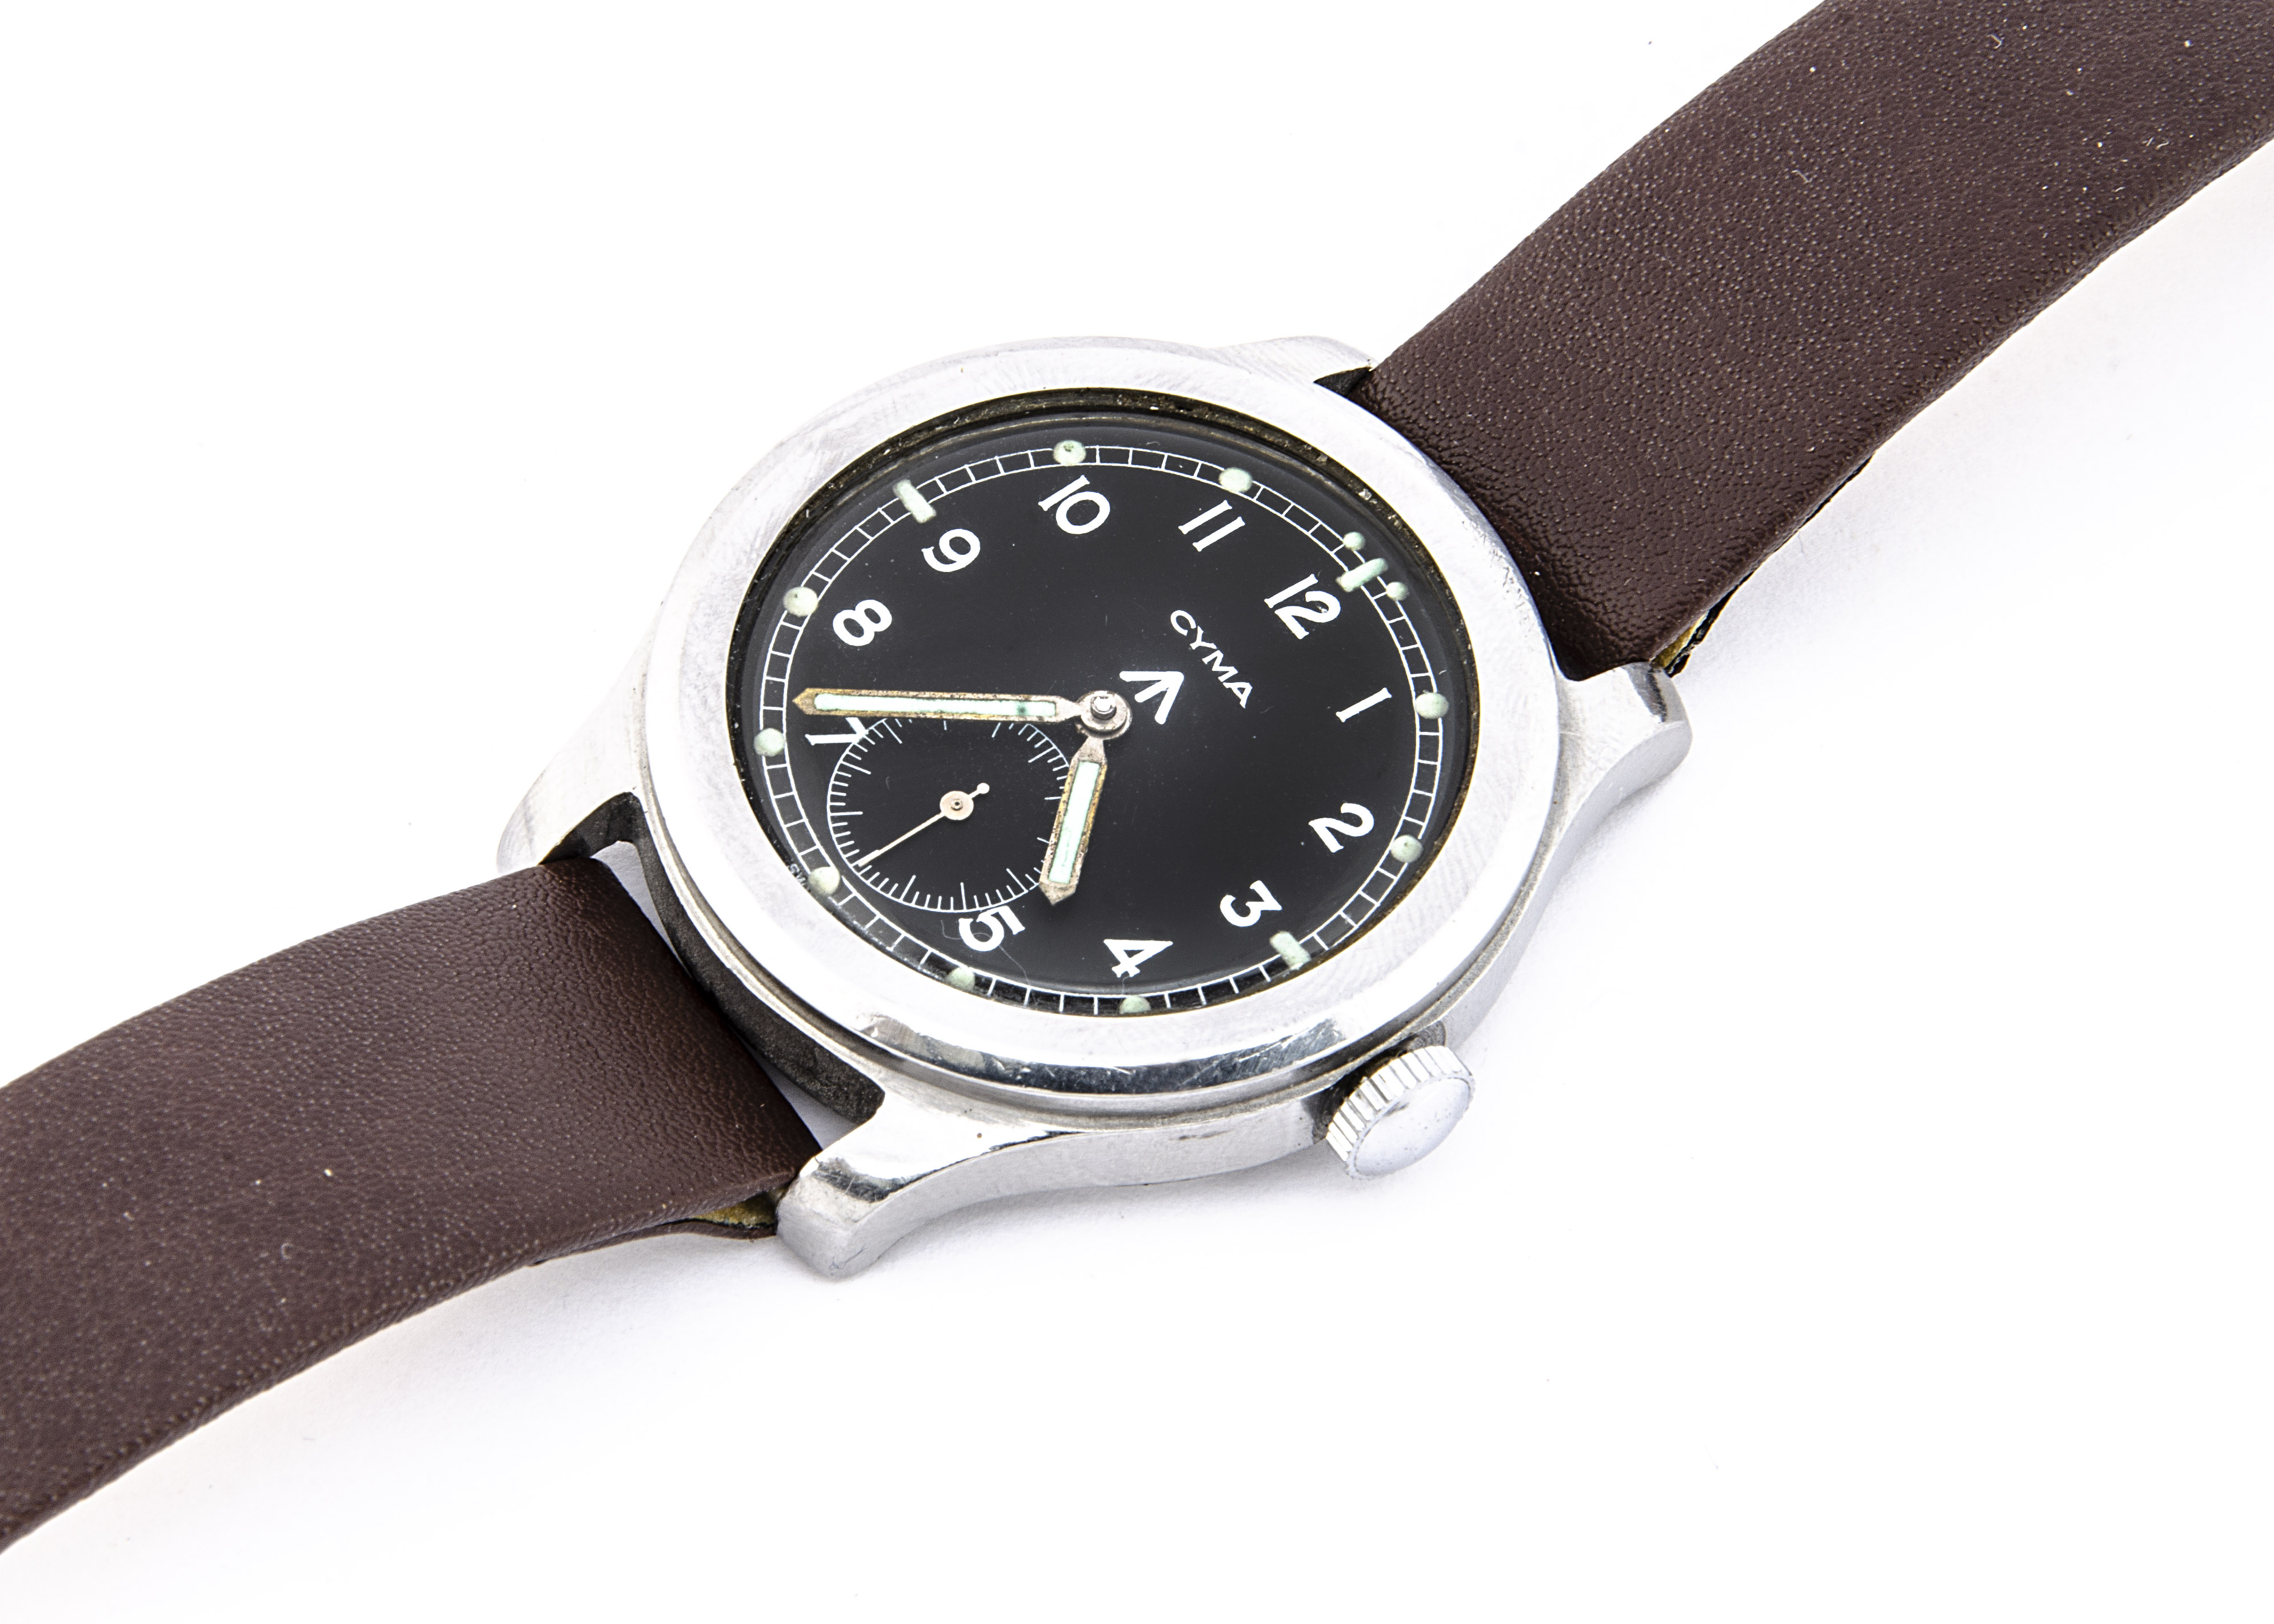 """A c1940s Cyma WWW Military """"Dirty Dozen"""" stainless steel wristwatch, 37mm case, running, black - Image 6 of 7"""